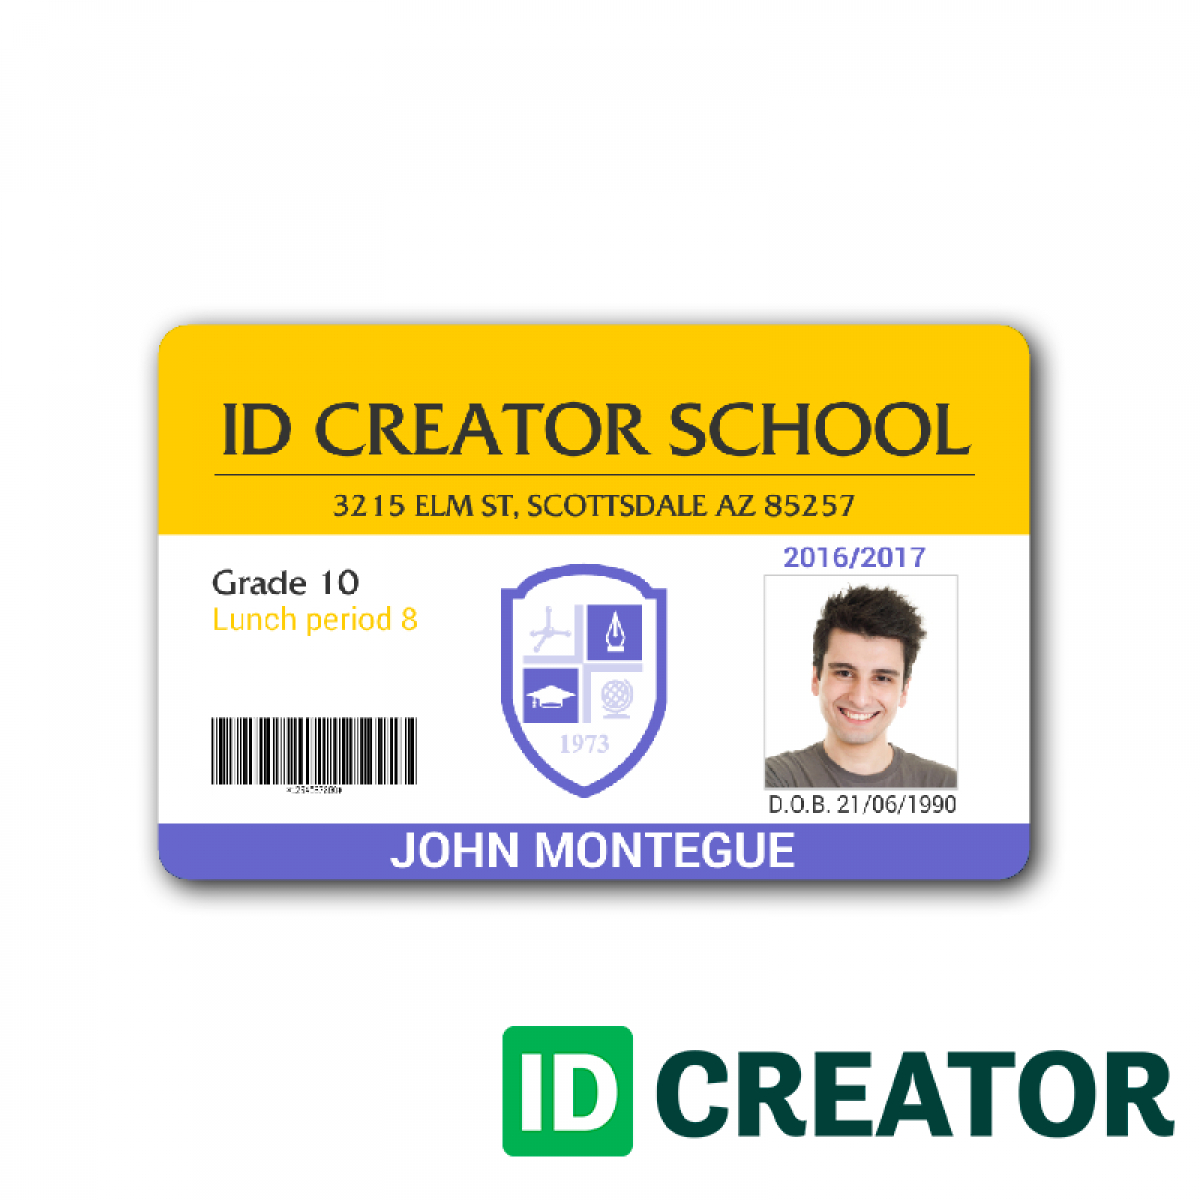 004 School Id Card Template Photoshop Marvelous Ideas intended for Teacher Id Card Template